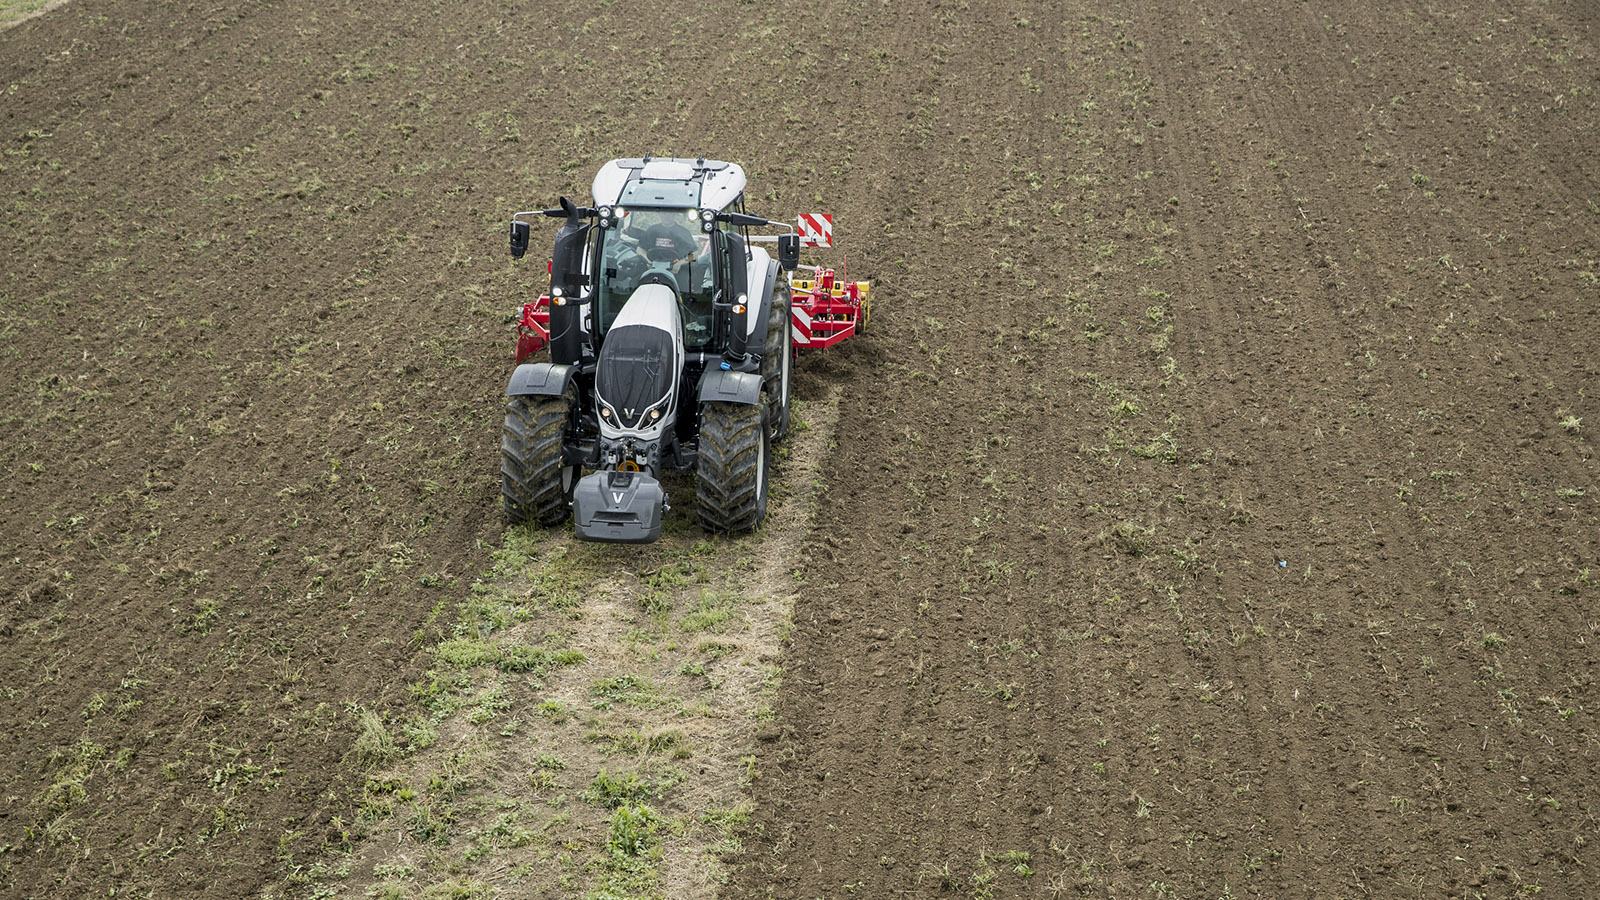 valtra t series tractor farm machinery on the field working